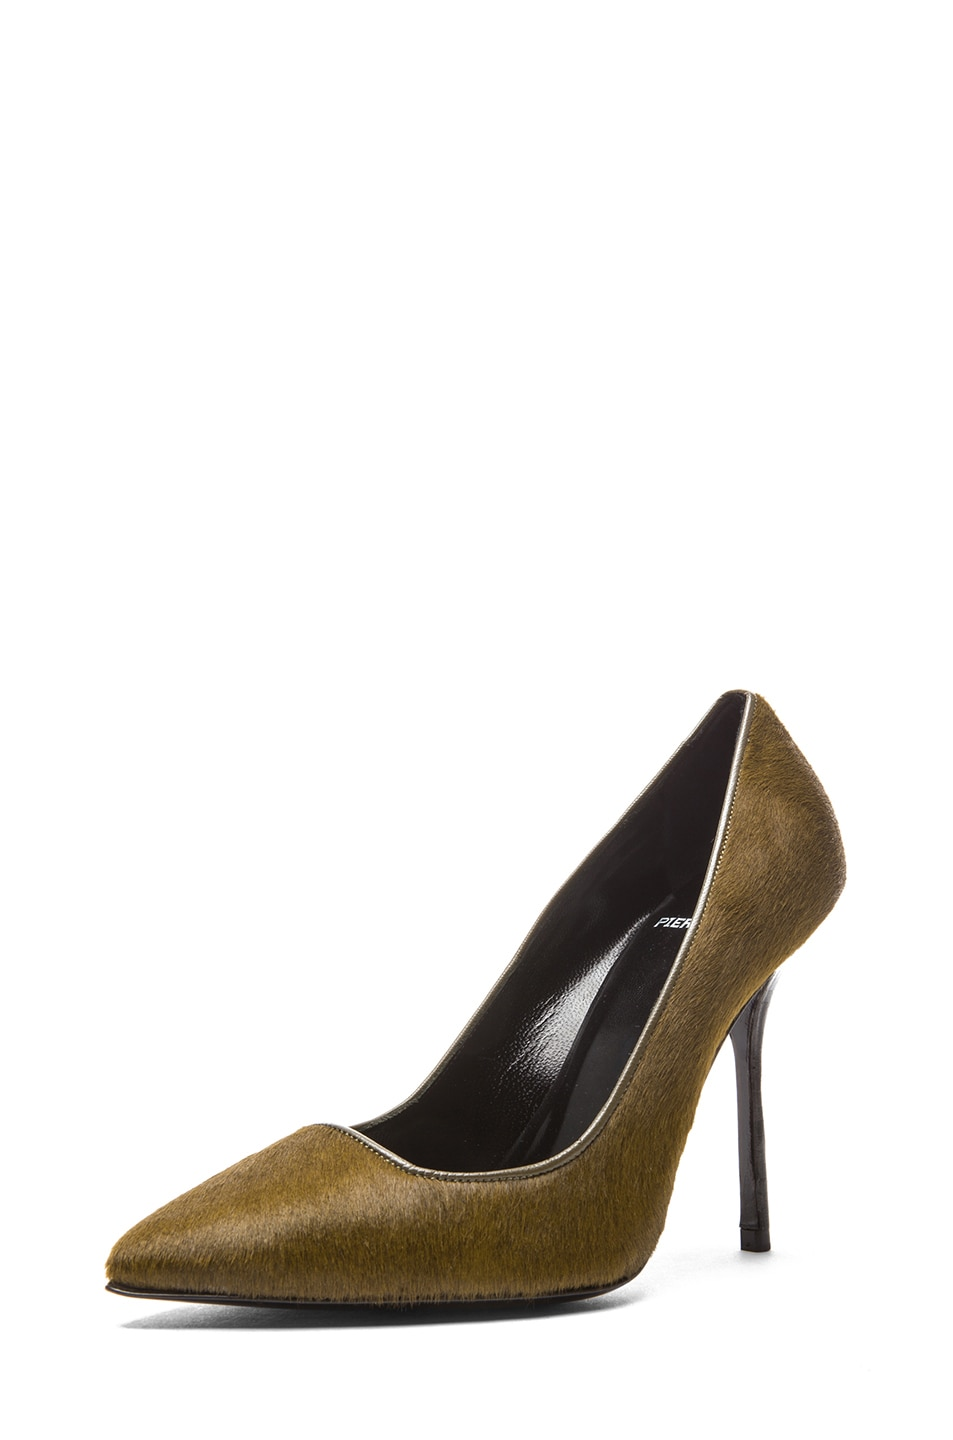 Image 2 of Pierre Hardy Calf Hair Pumps in Kaki